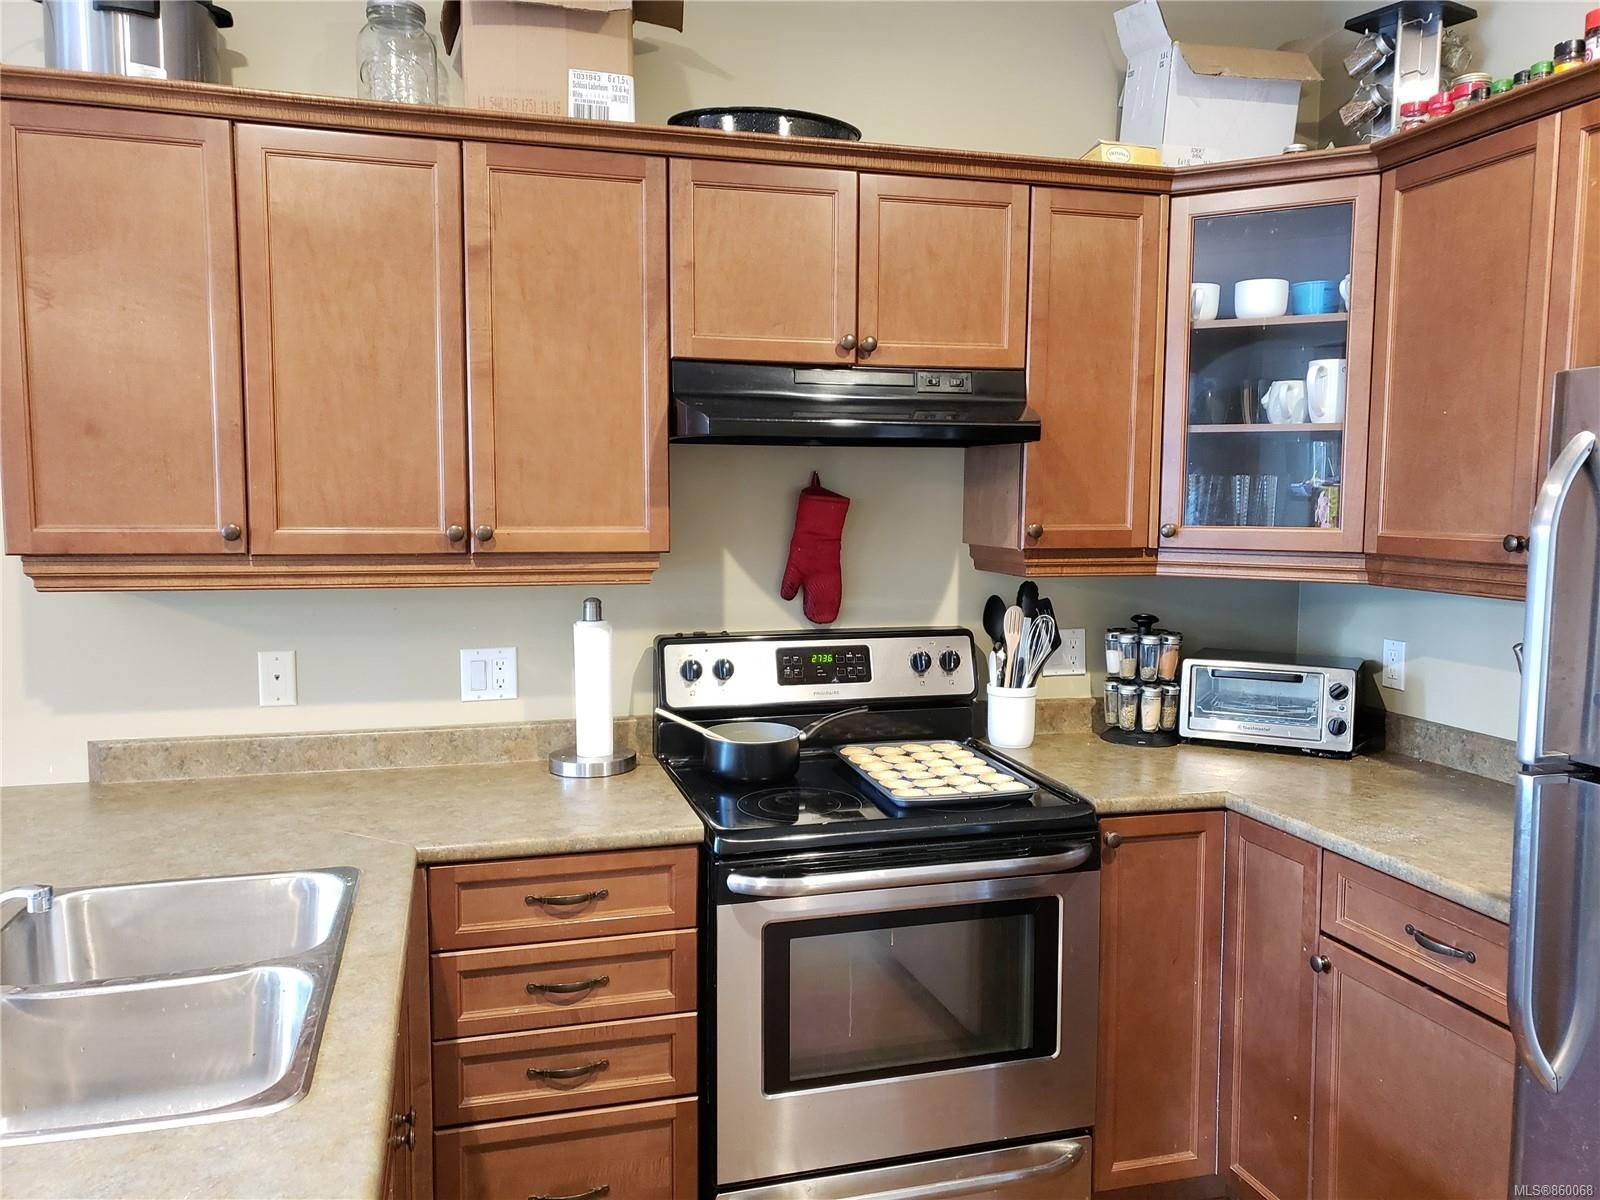 Photo 5: Photos: 105 2787 1st St in Courtenay: CV Courtenay City House for sale (Comox Valley)  : MLS®# 860068